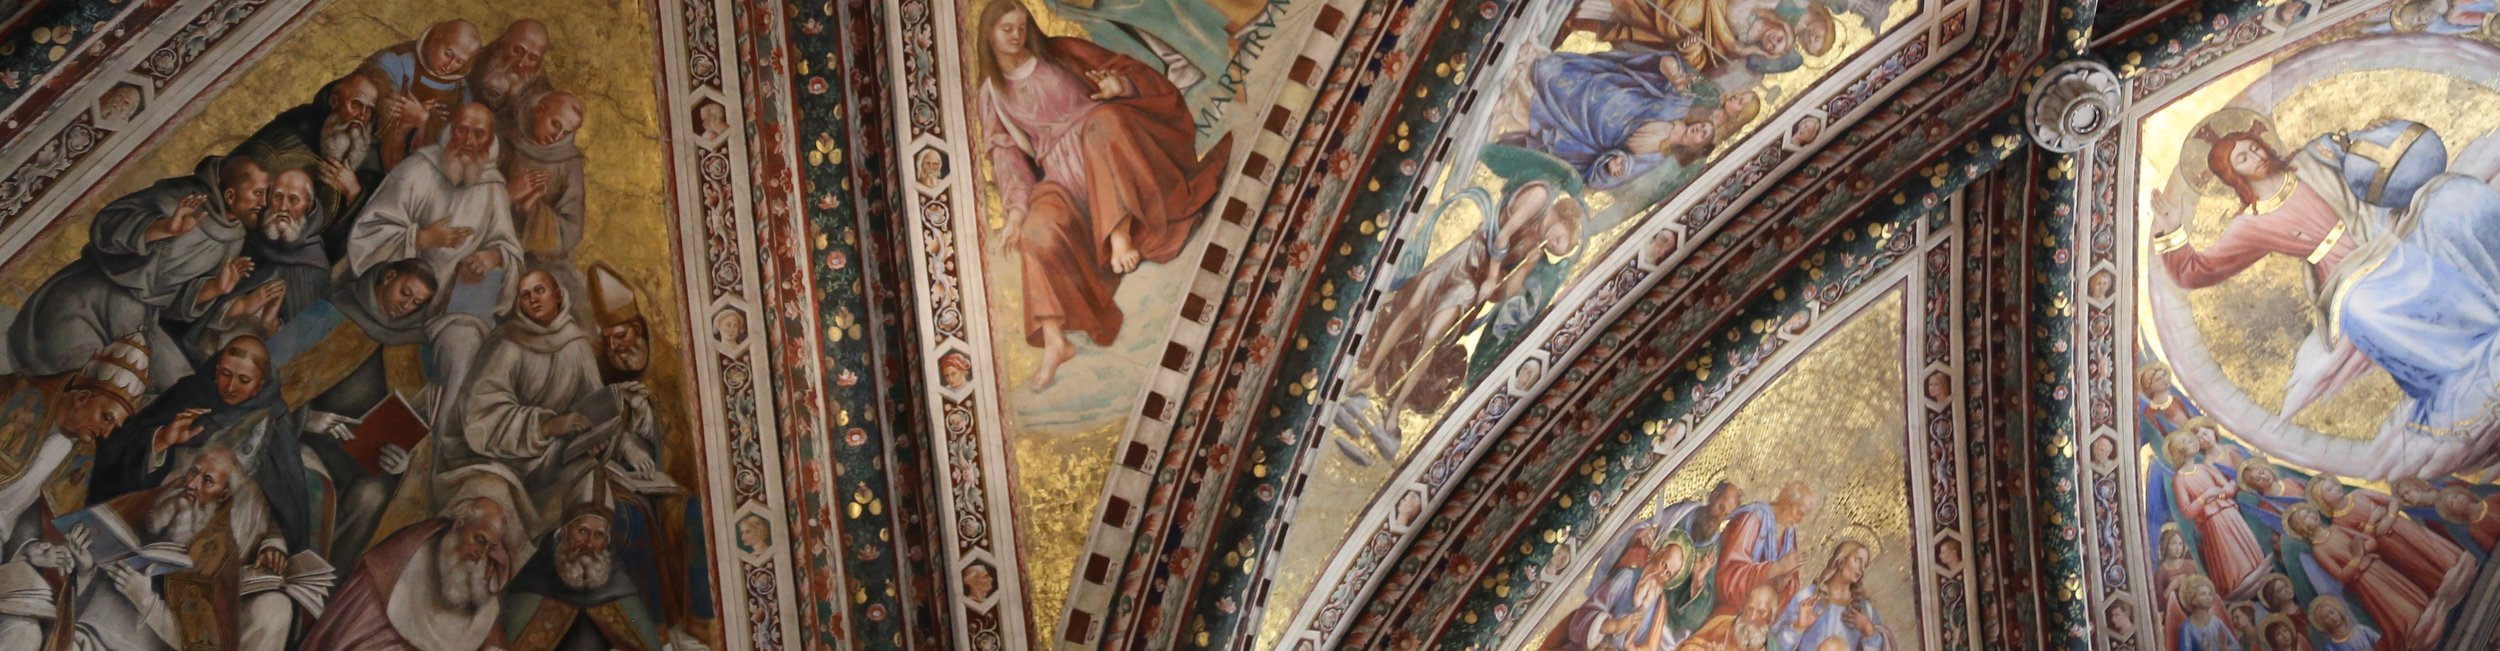 Detail of the ceiling frescos in the Chapel of San Brizio, the Duomo in Orvieto (photo credit Gianna Scavo)